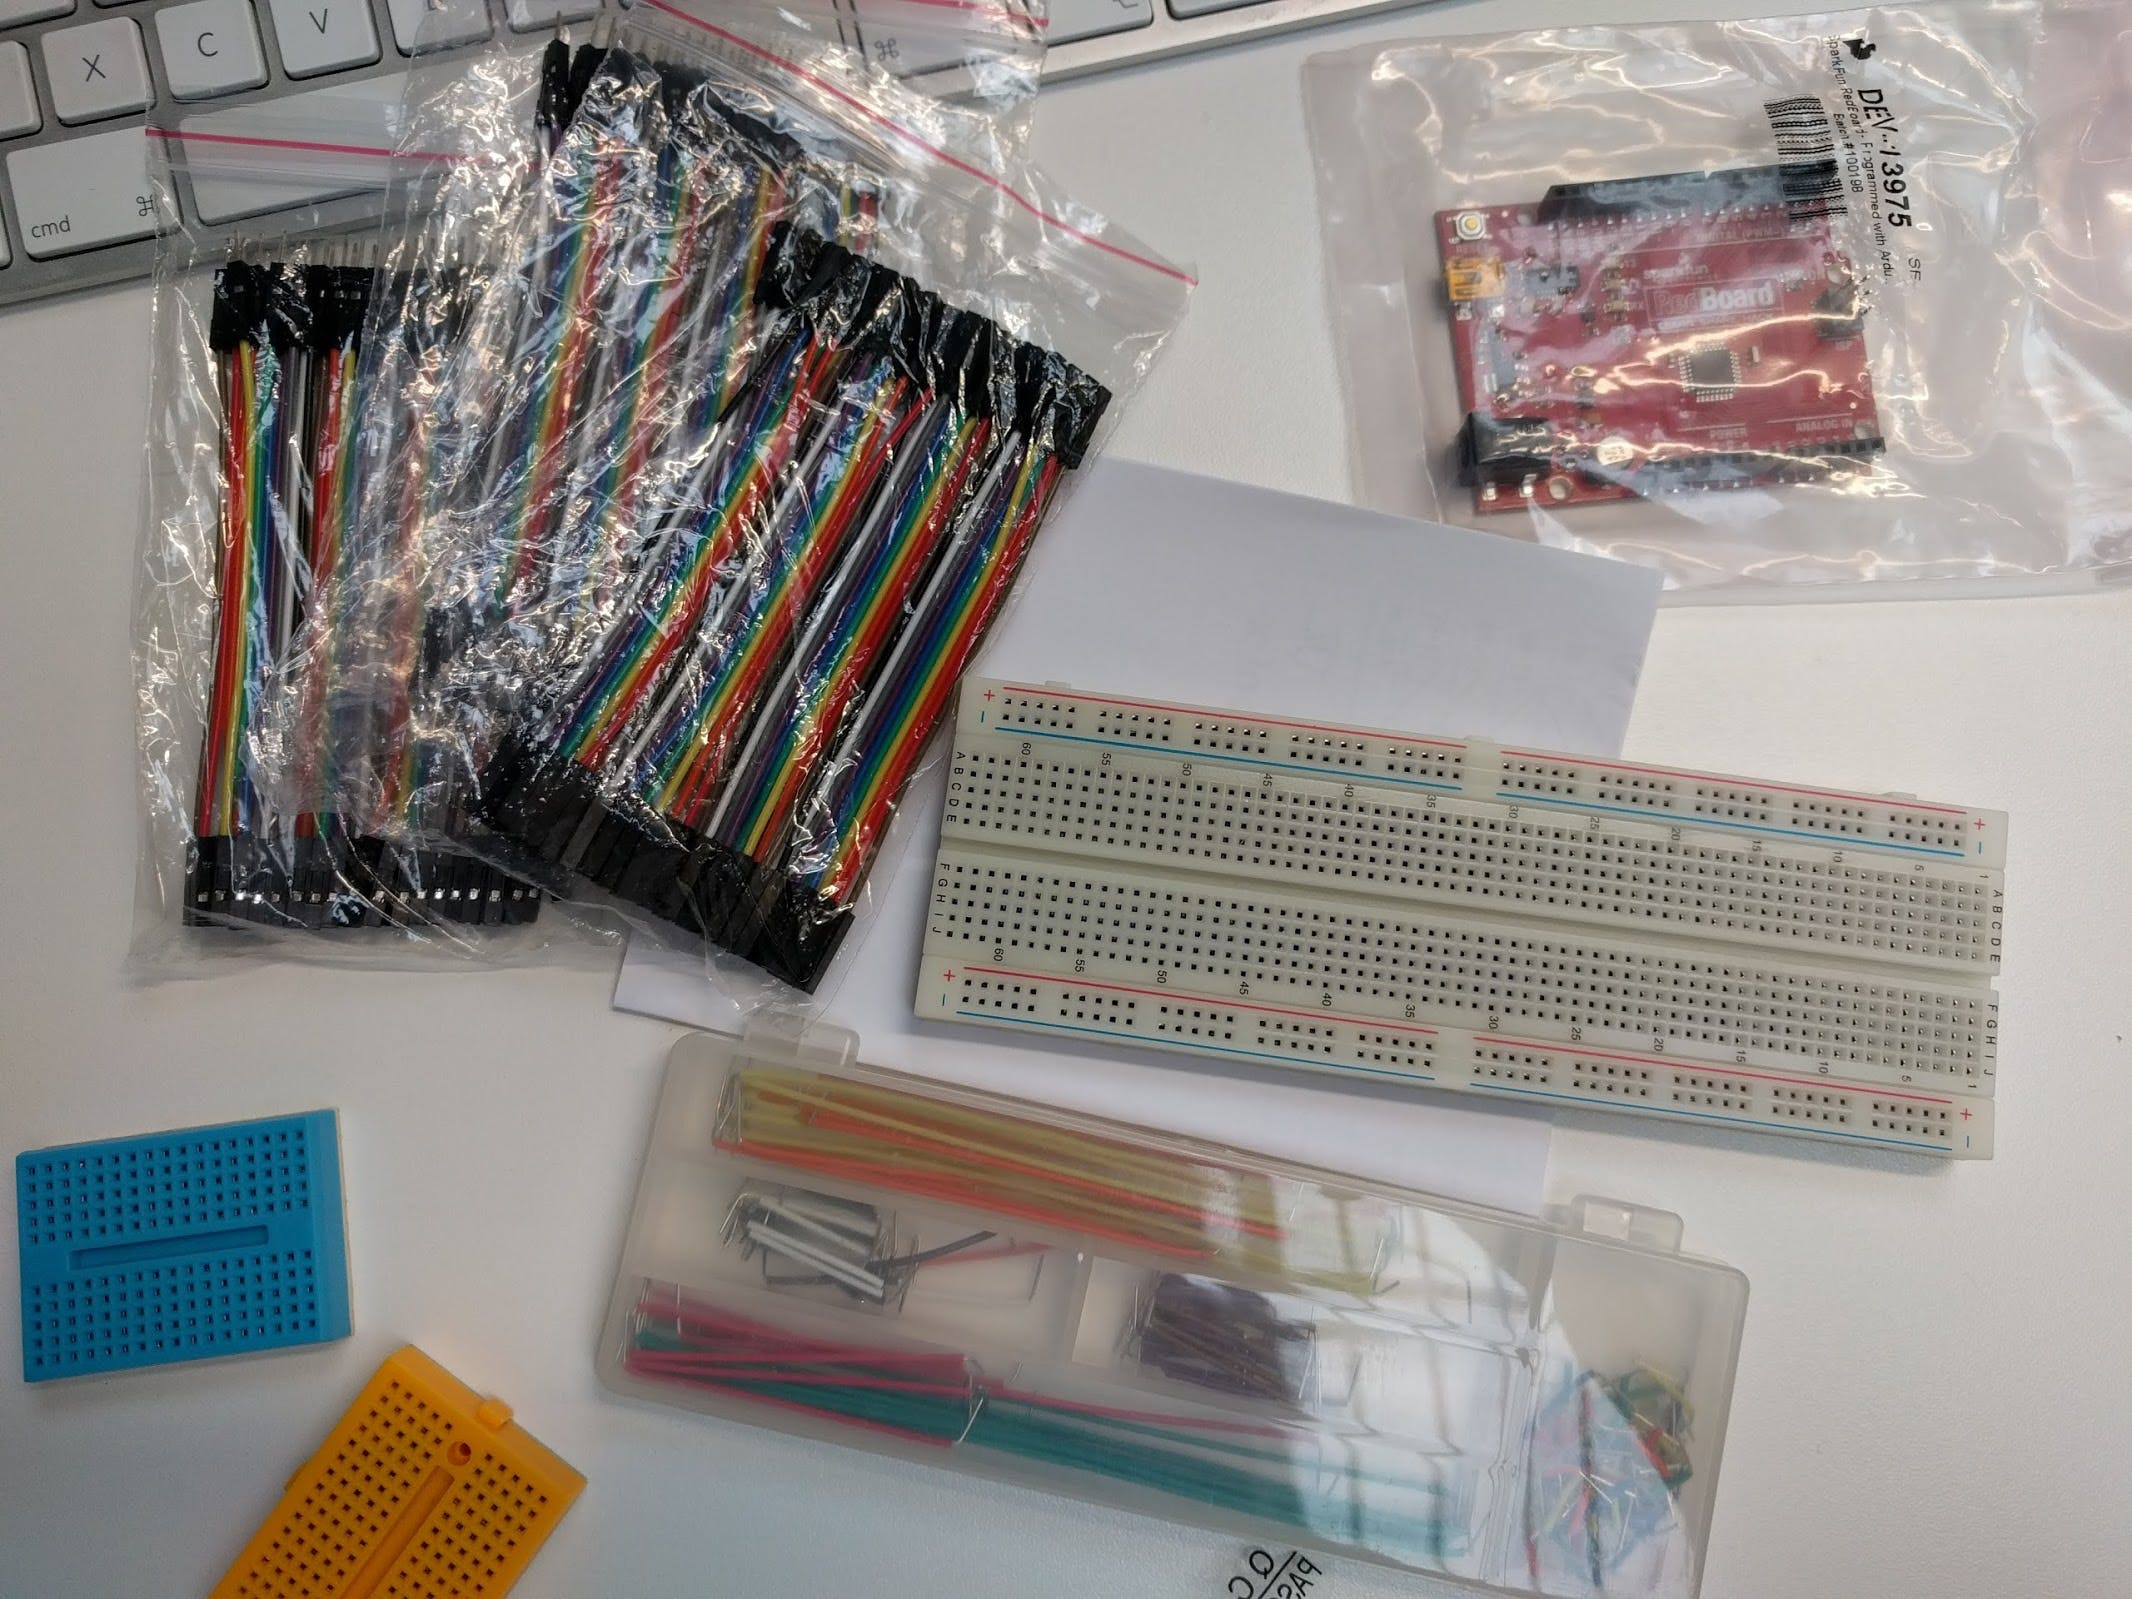 lots of breadboard wires